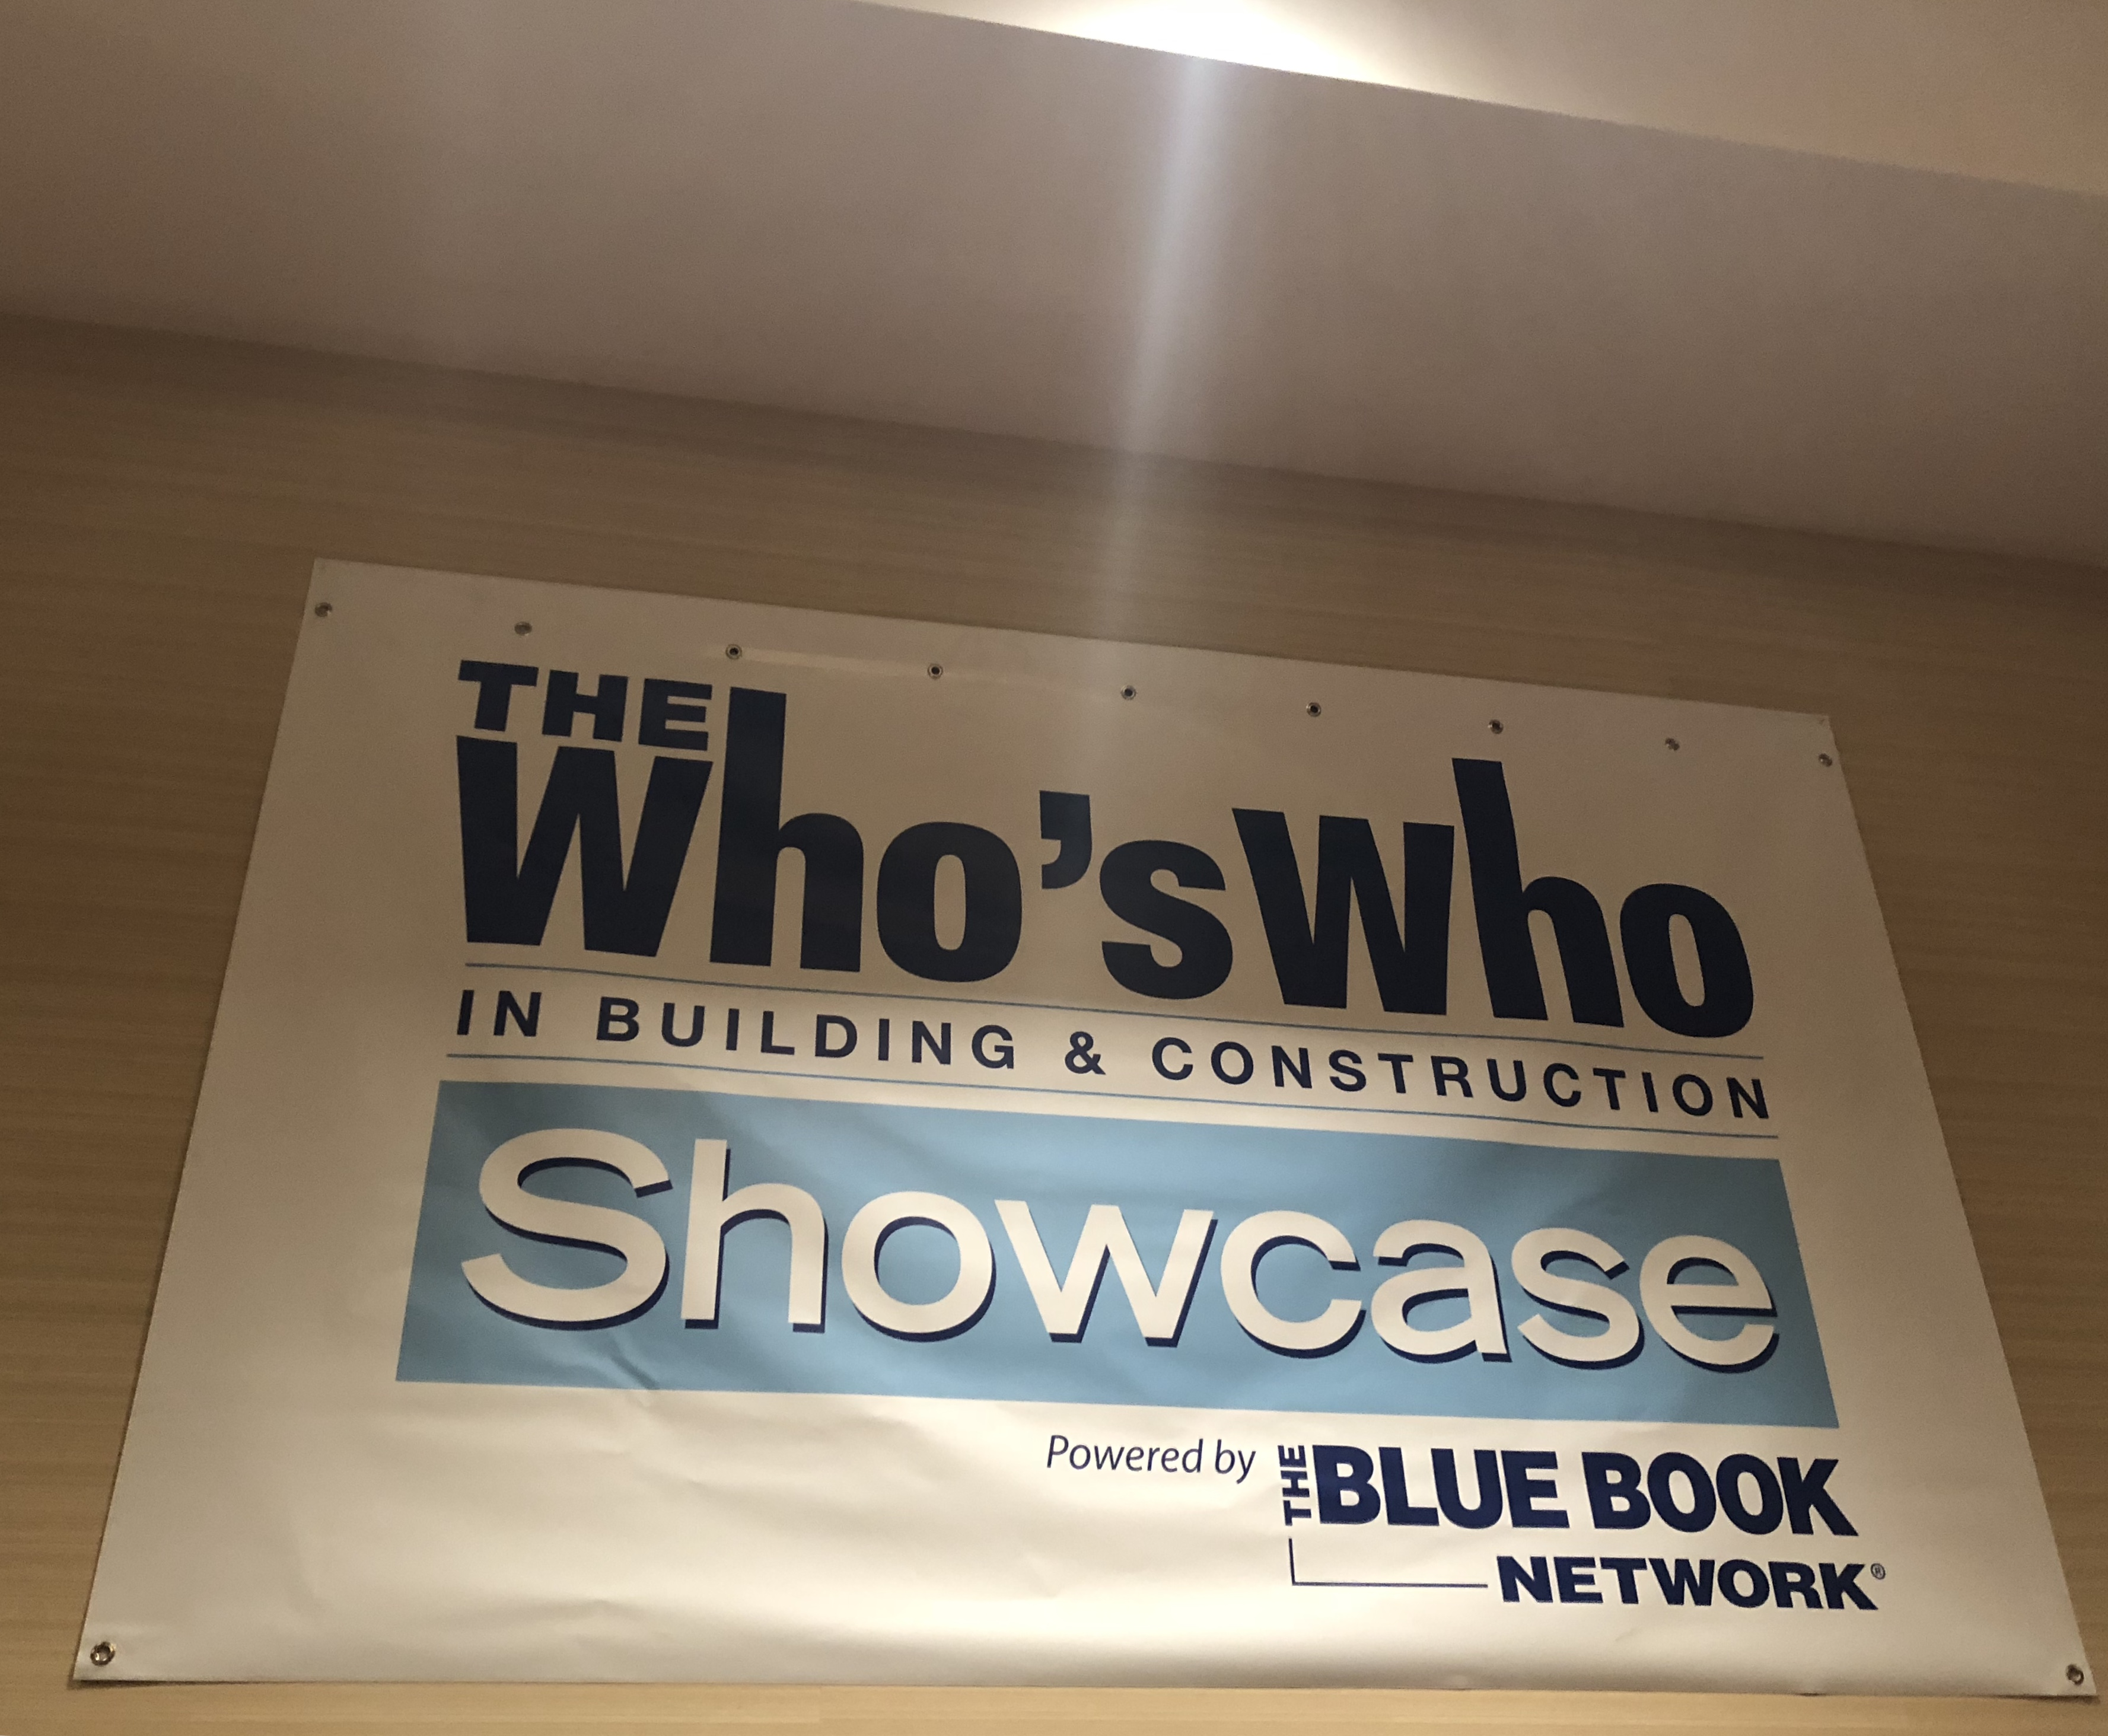 a banner of the whos who in building and construction show case during the networking event